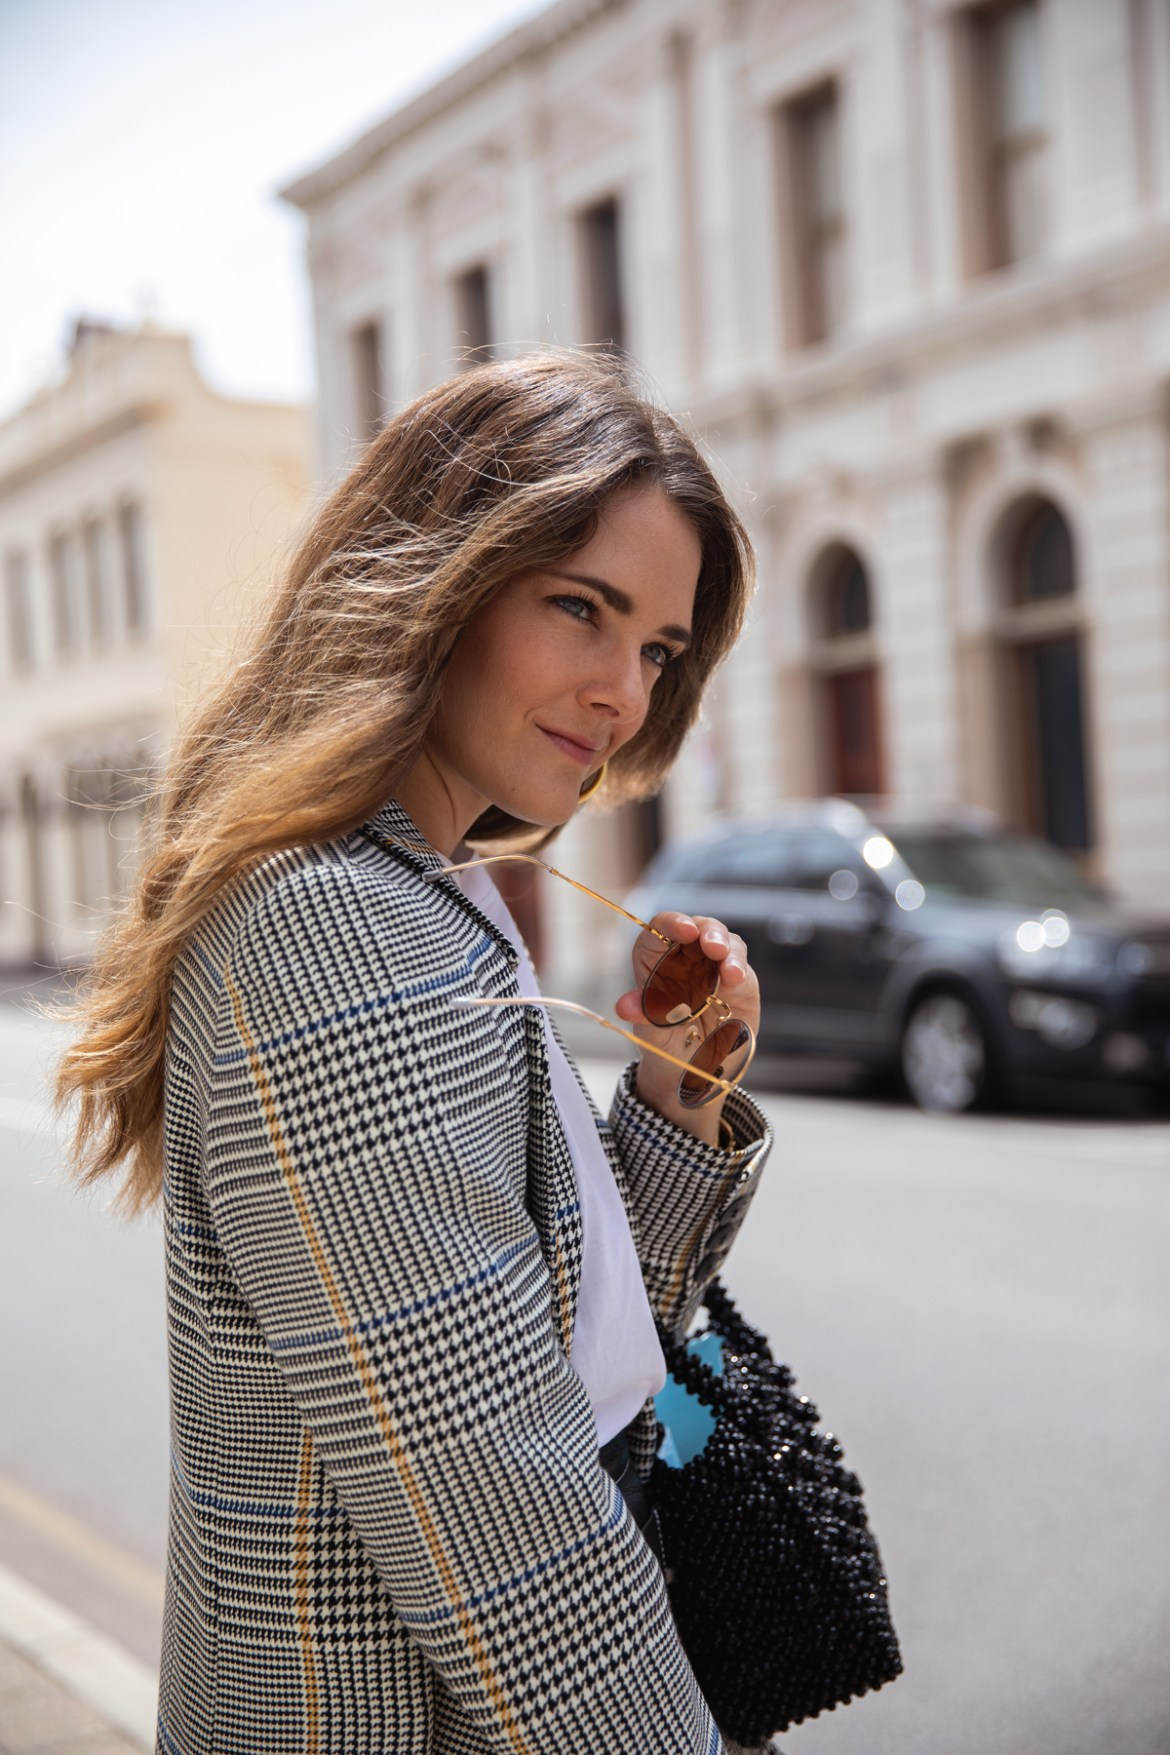 Anine Bing Madeline Blazer in check worn by Inspiring Wit with Shrimps beaded bag